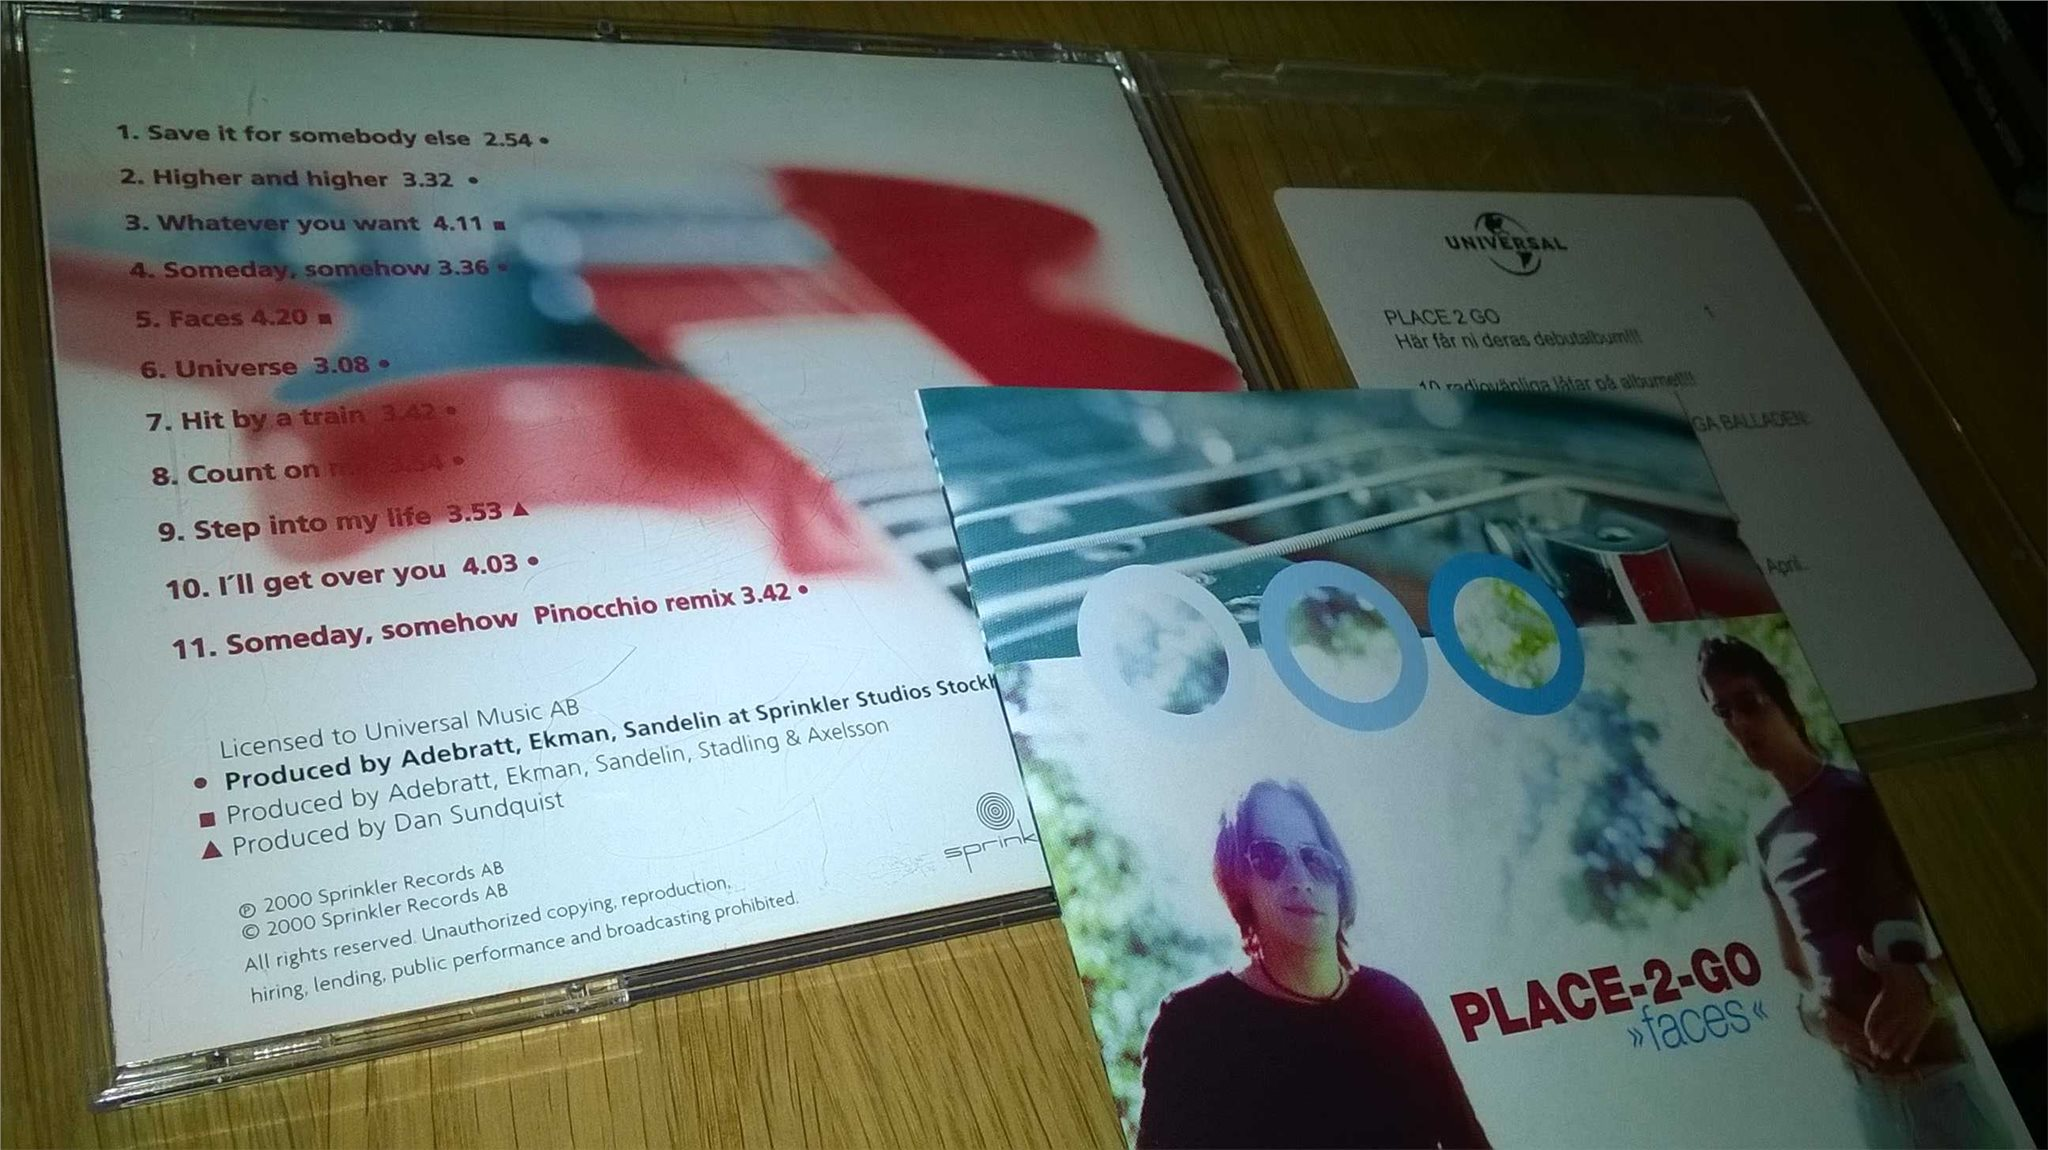 Place-2-Go - Faces, CD